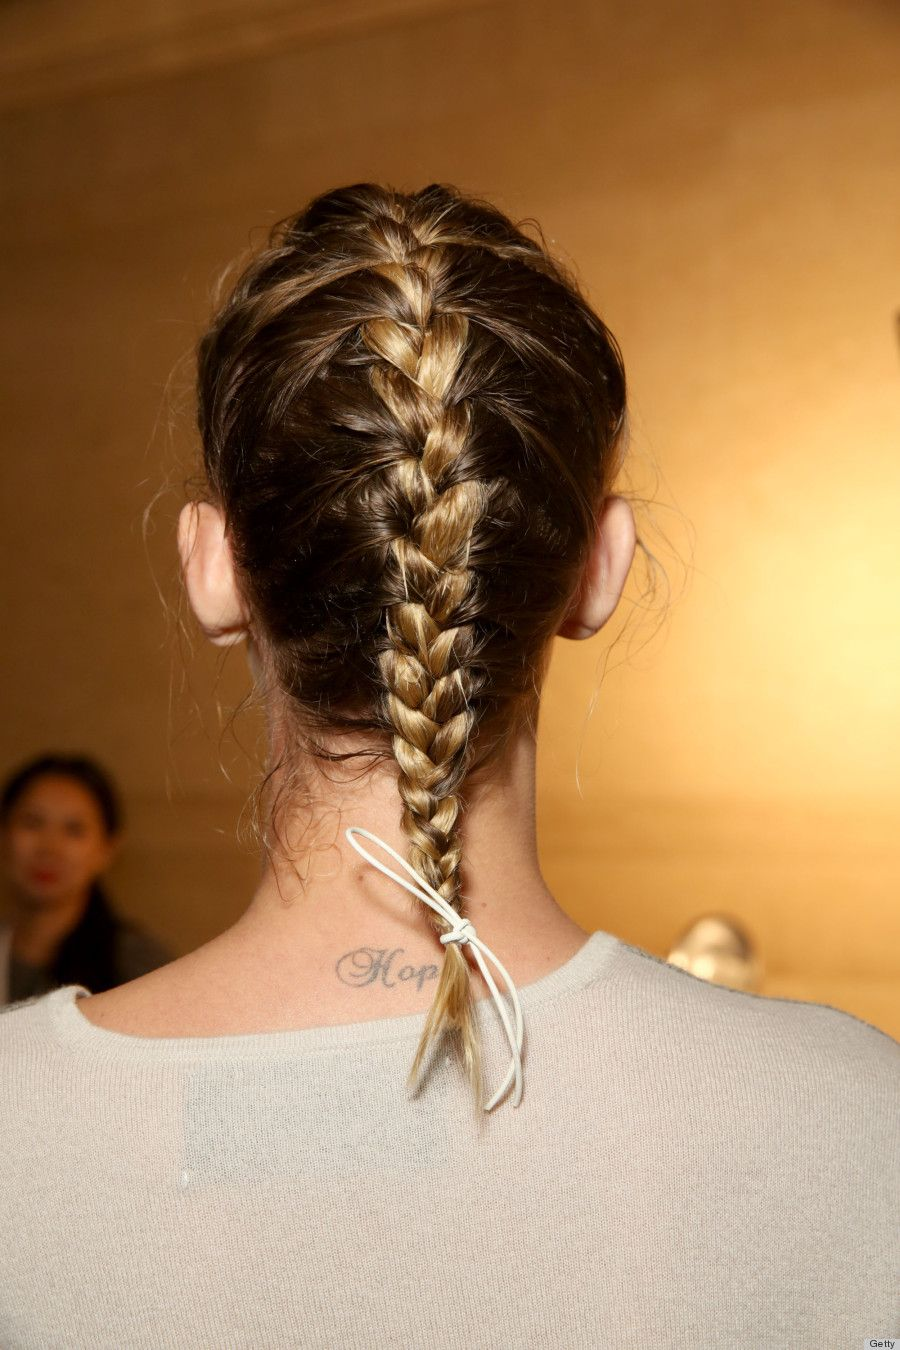 Braided spring hairstyles inspired from the runway